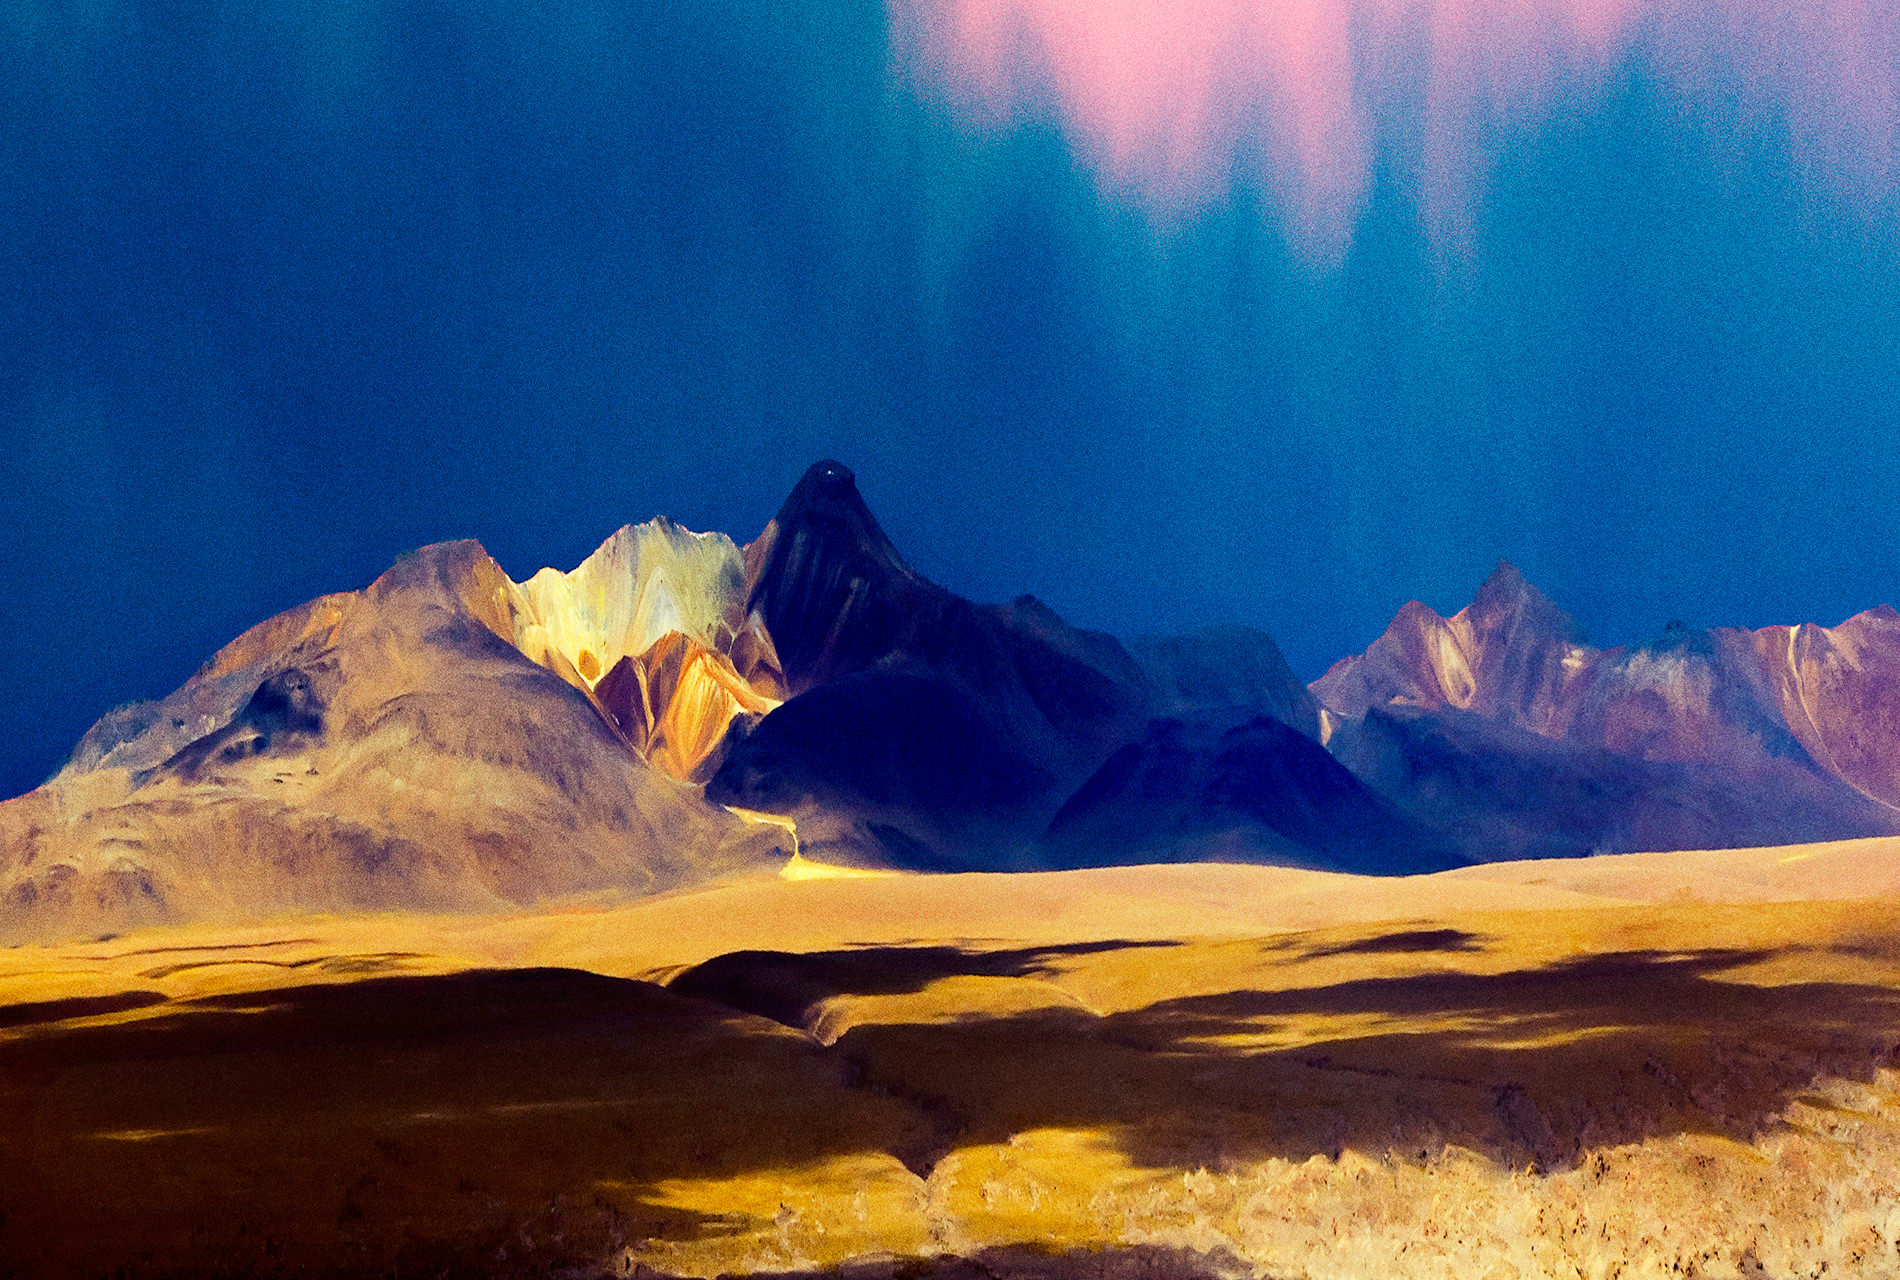 Brendan Pattengale Paysages Islande Chili Bolivie